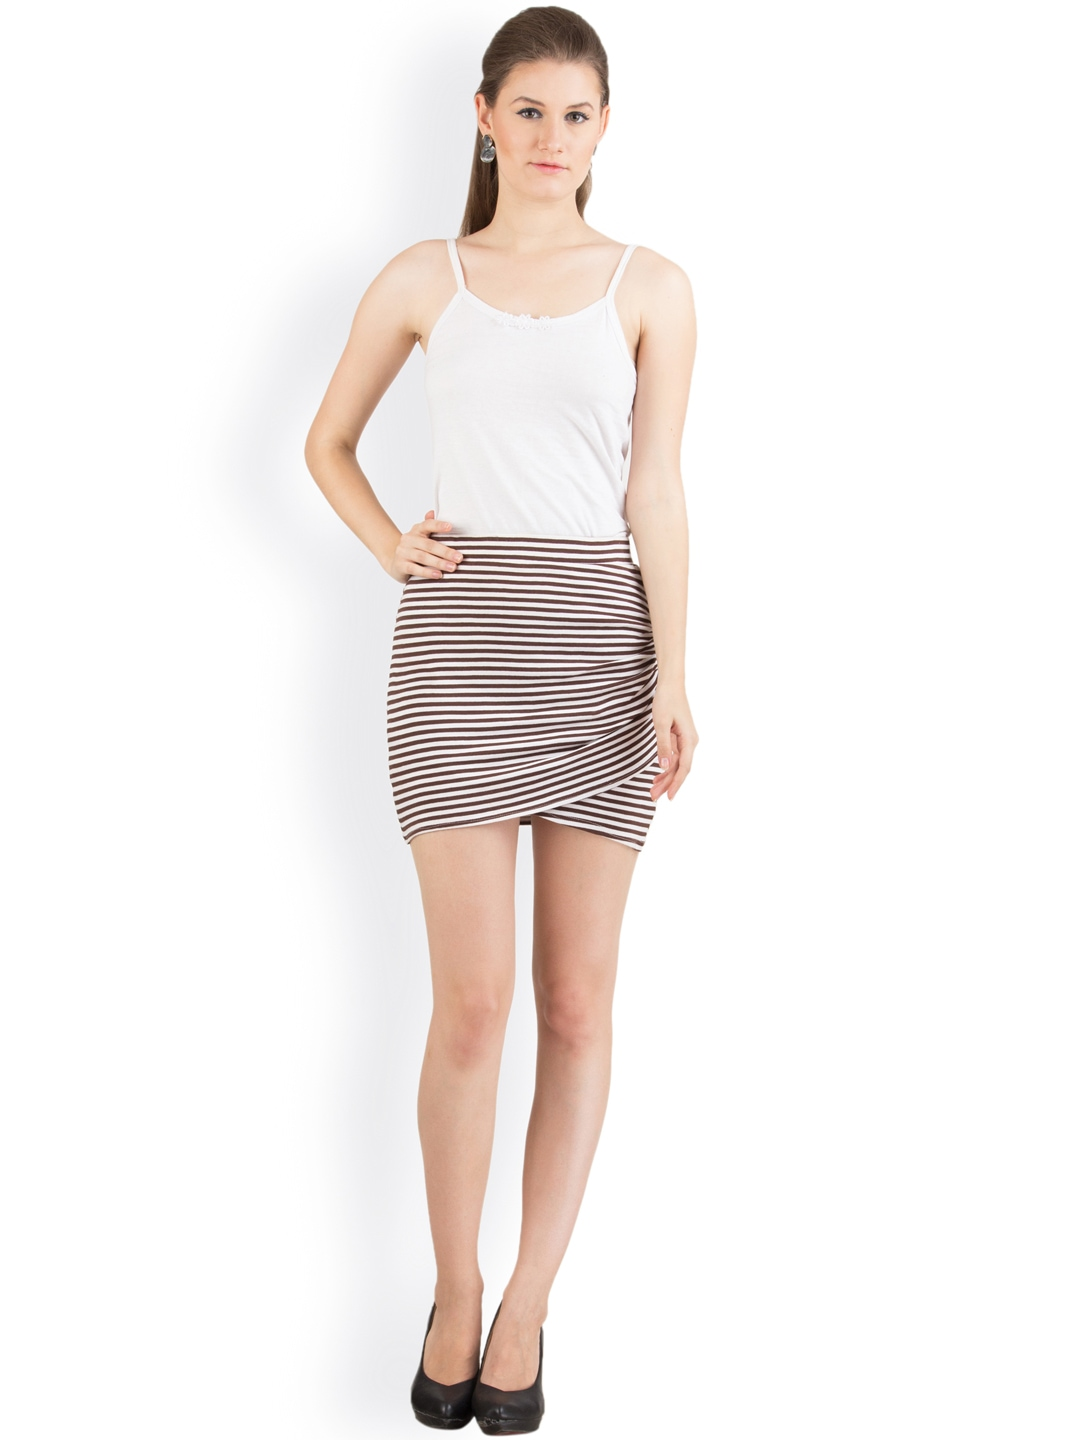 Women's Casual Short Skirts, Tulip Shorts Skorts White/Black. by PERSUN. $ - $ $ 14 $ 17 99 Prime. FREE Shipping on eligible orders. Some sizes/colors are Prime eligible. out of .